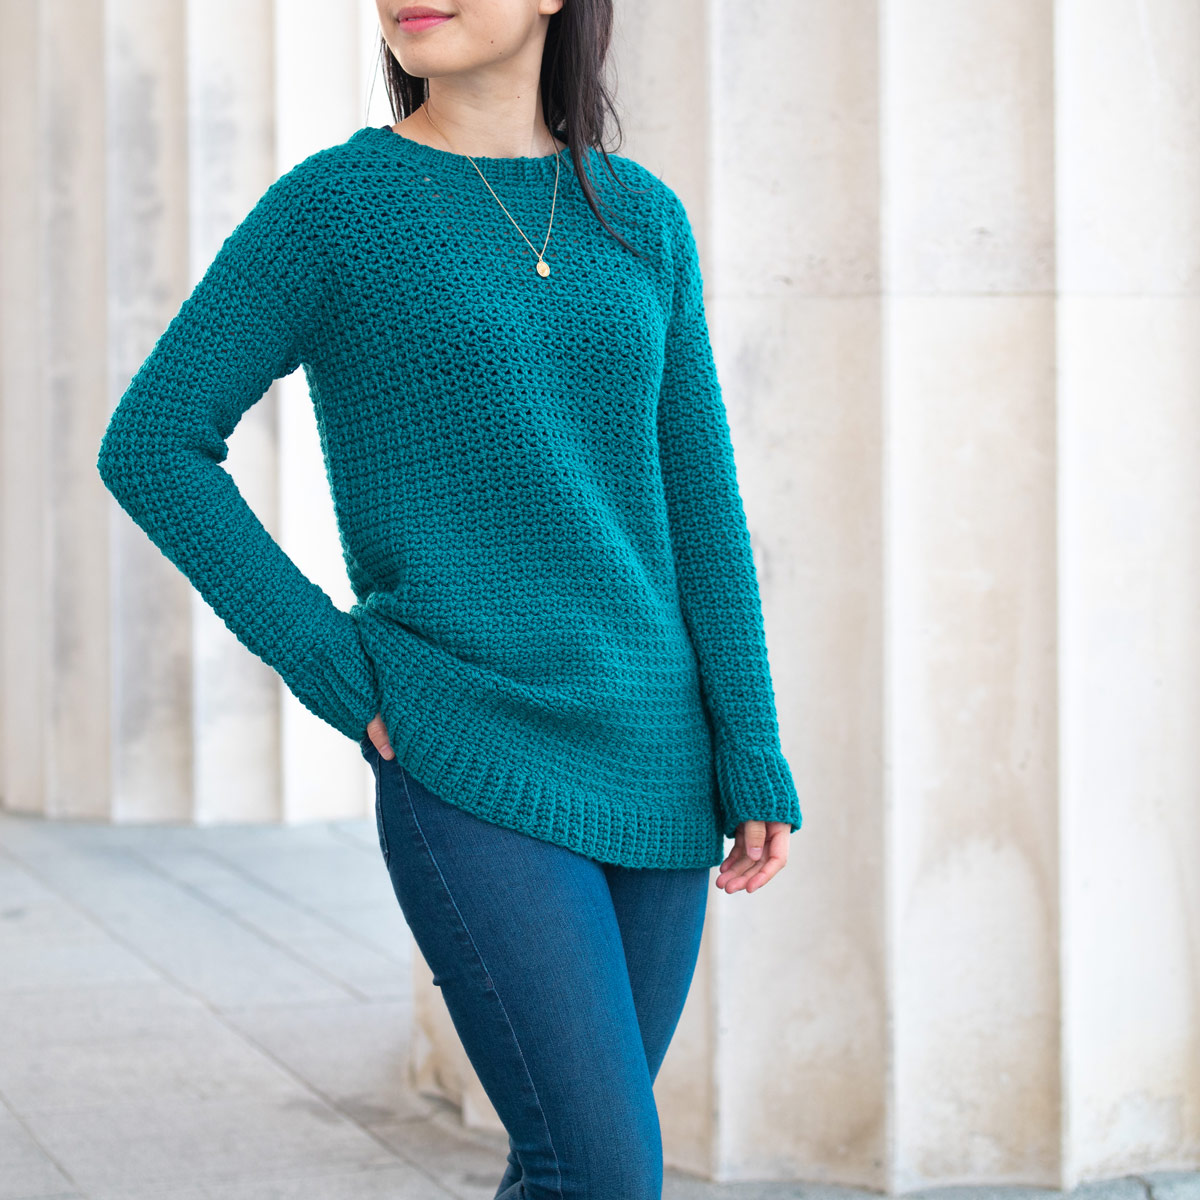 woman wearing emerald green long textured crochet sweater with blue denim jeans